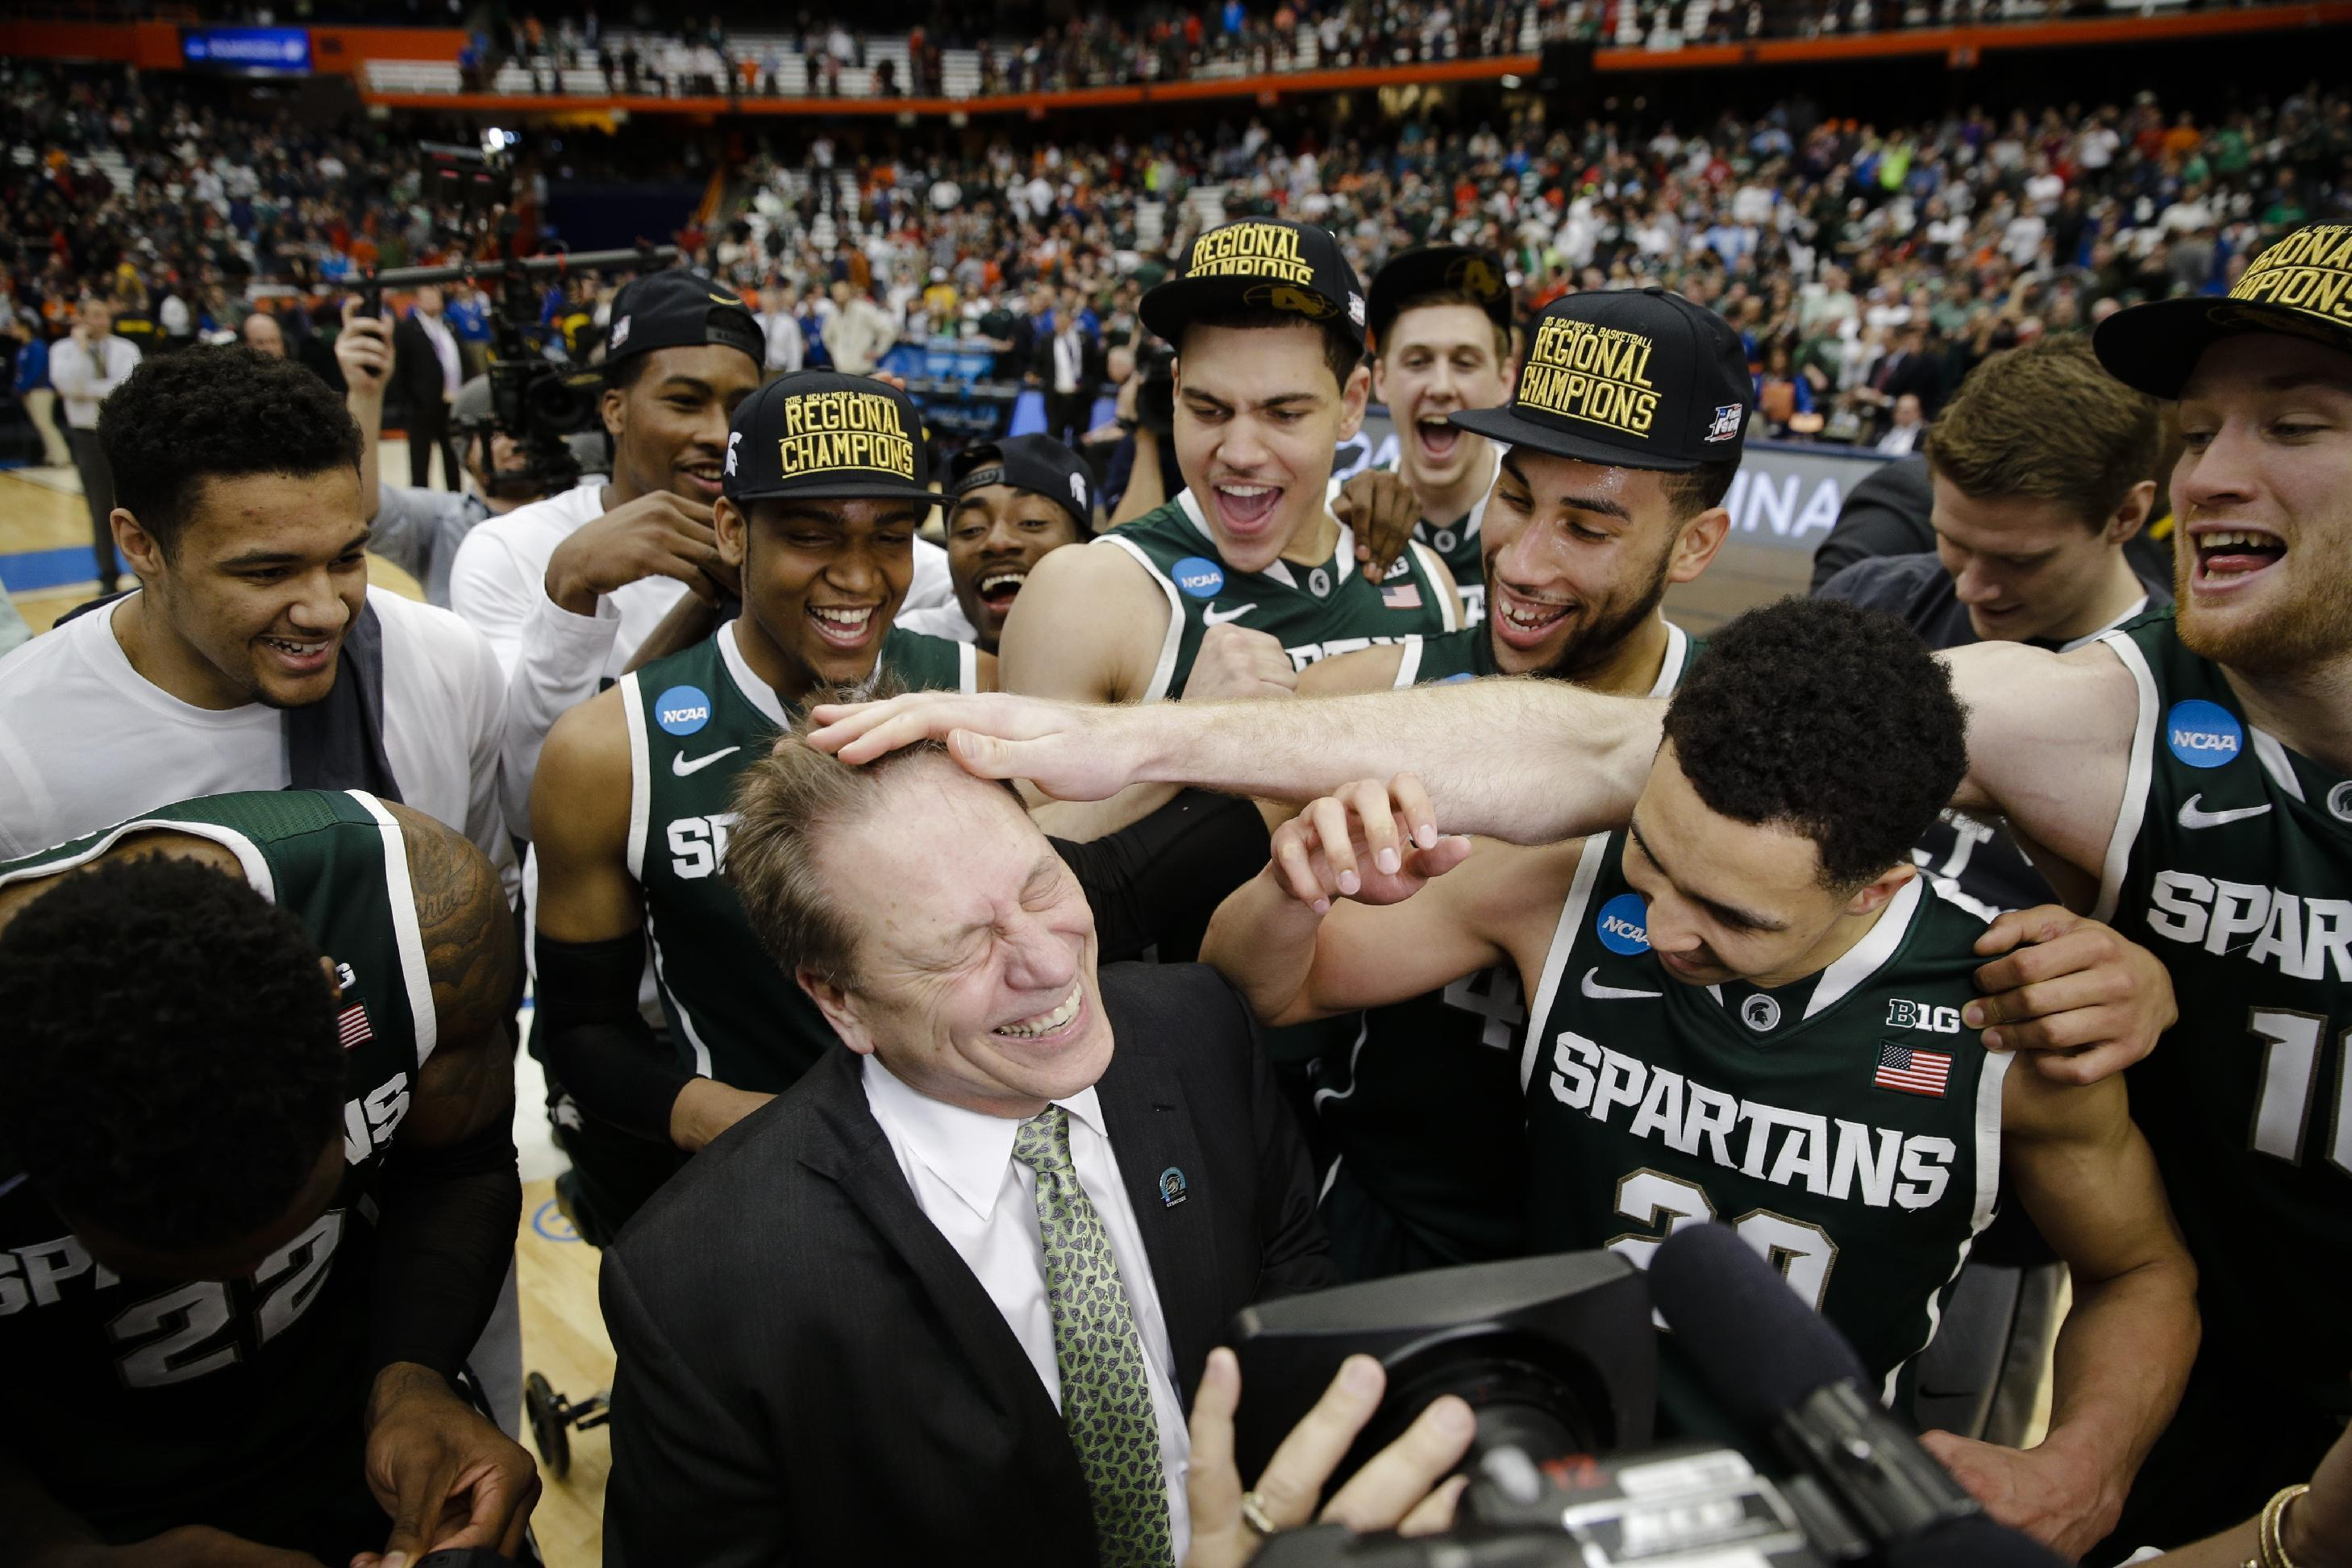 Spartans Final Four-bound after 76-70 OT win over Louisville